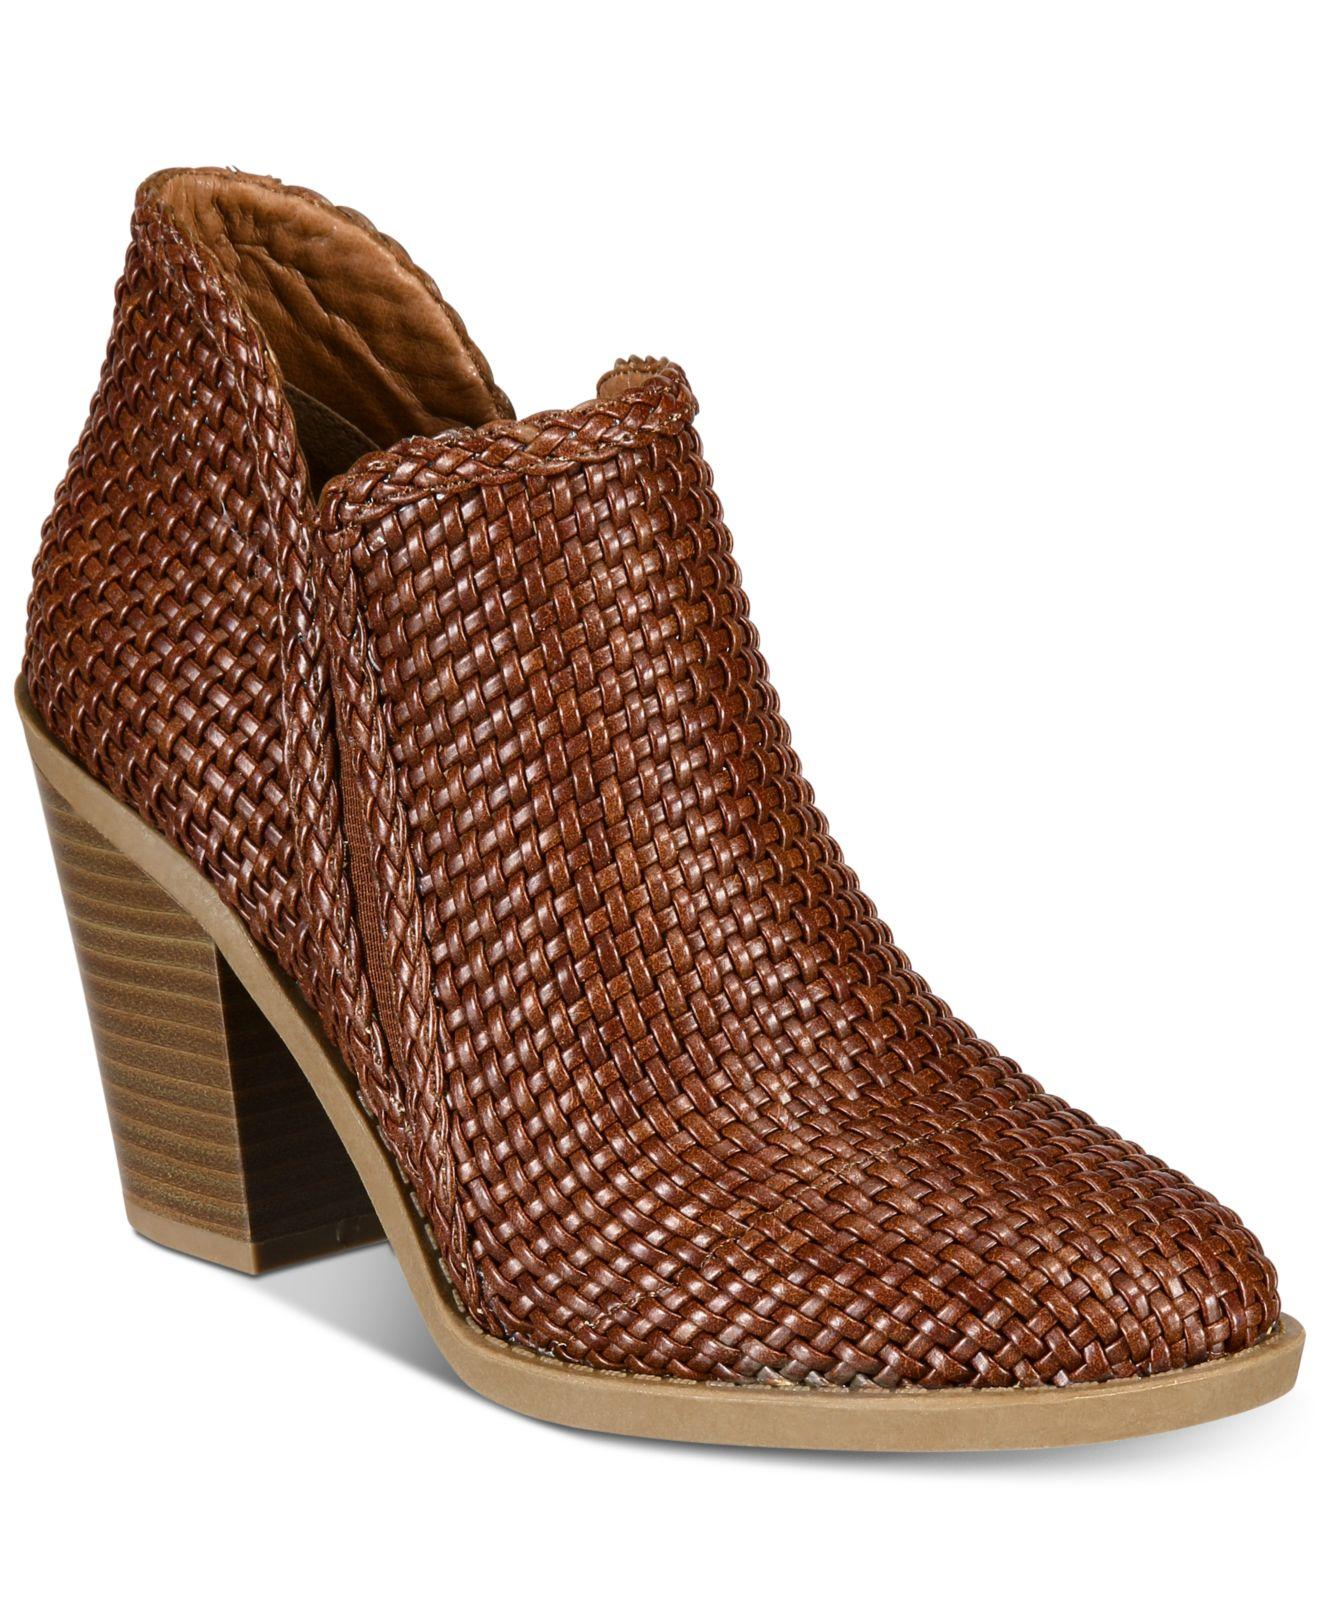 9e1b029979bb Lyst - Esprit Kelsie Block-heel Ankle Booties in Brown